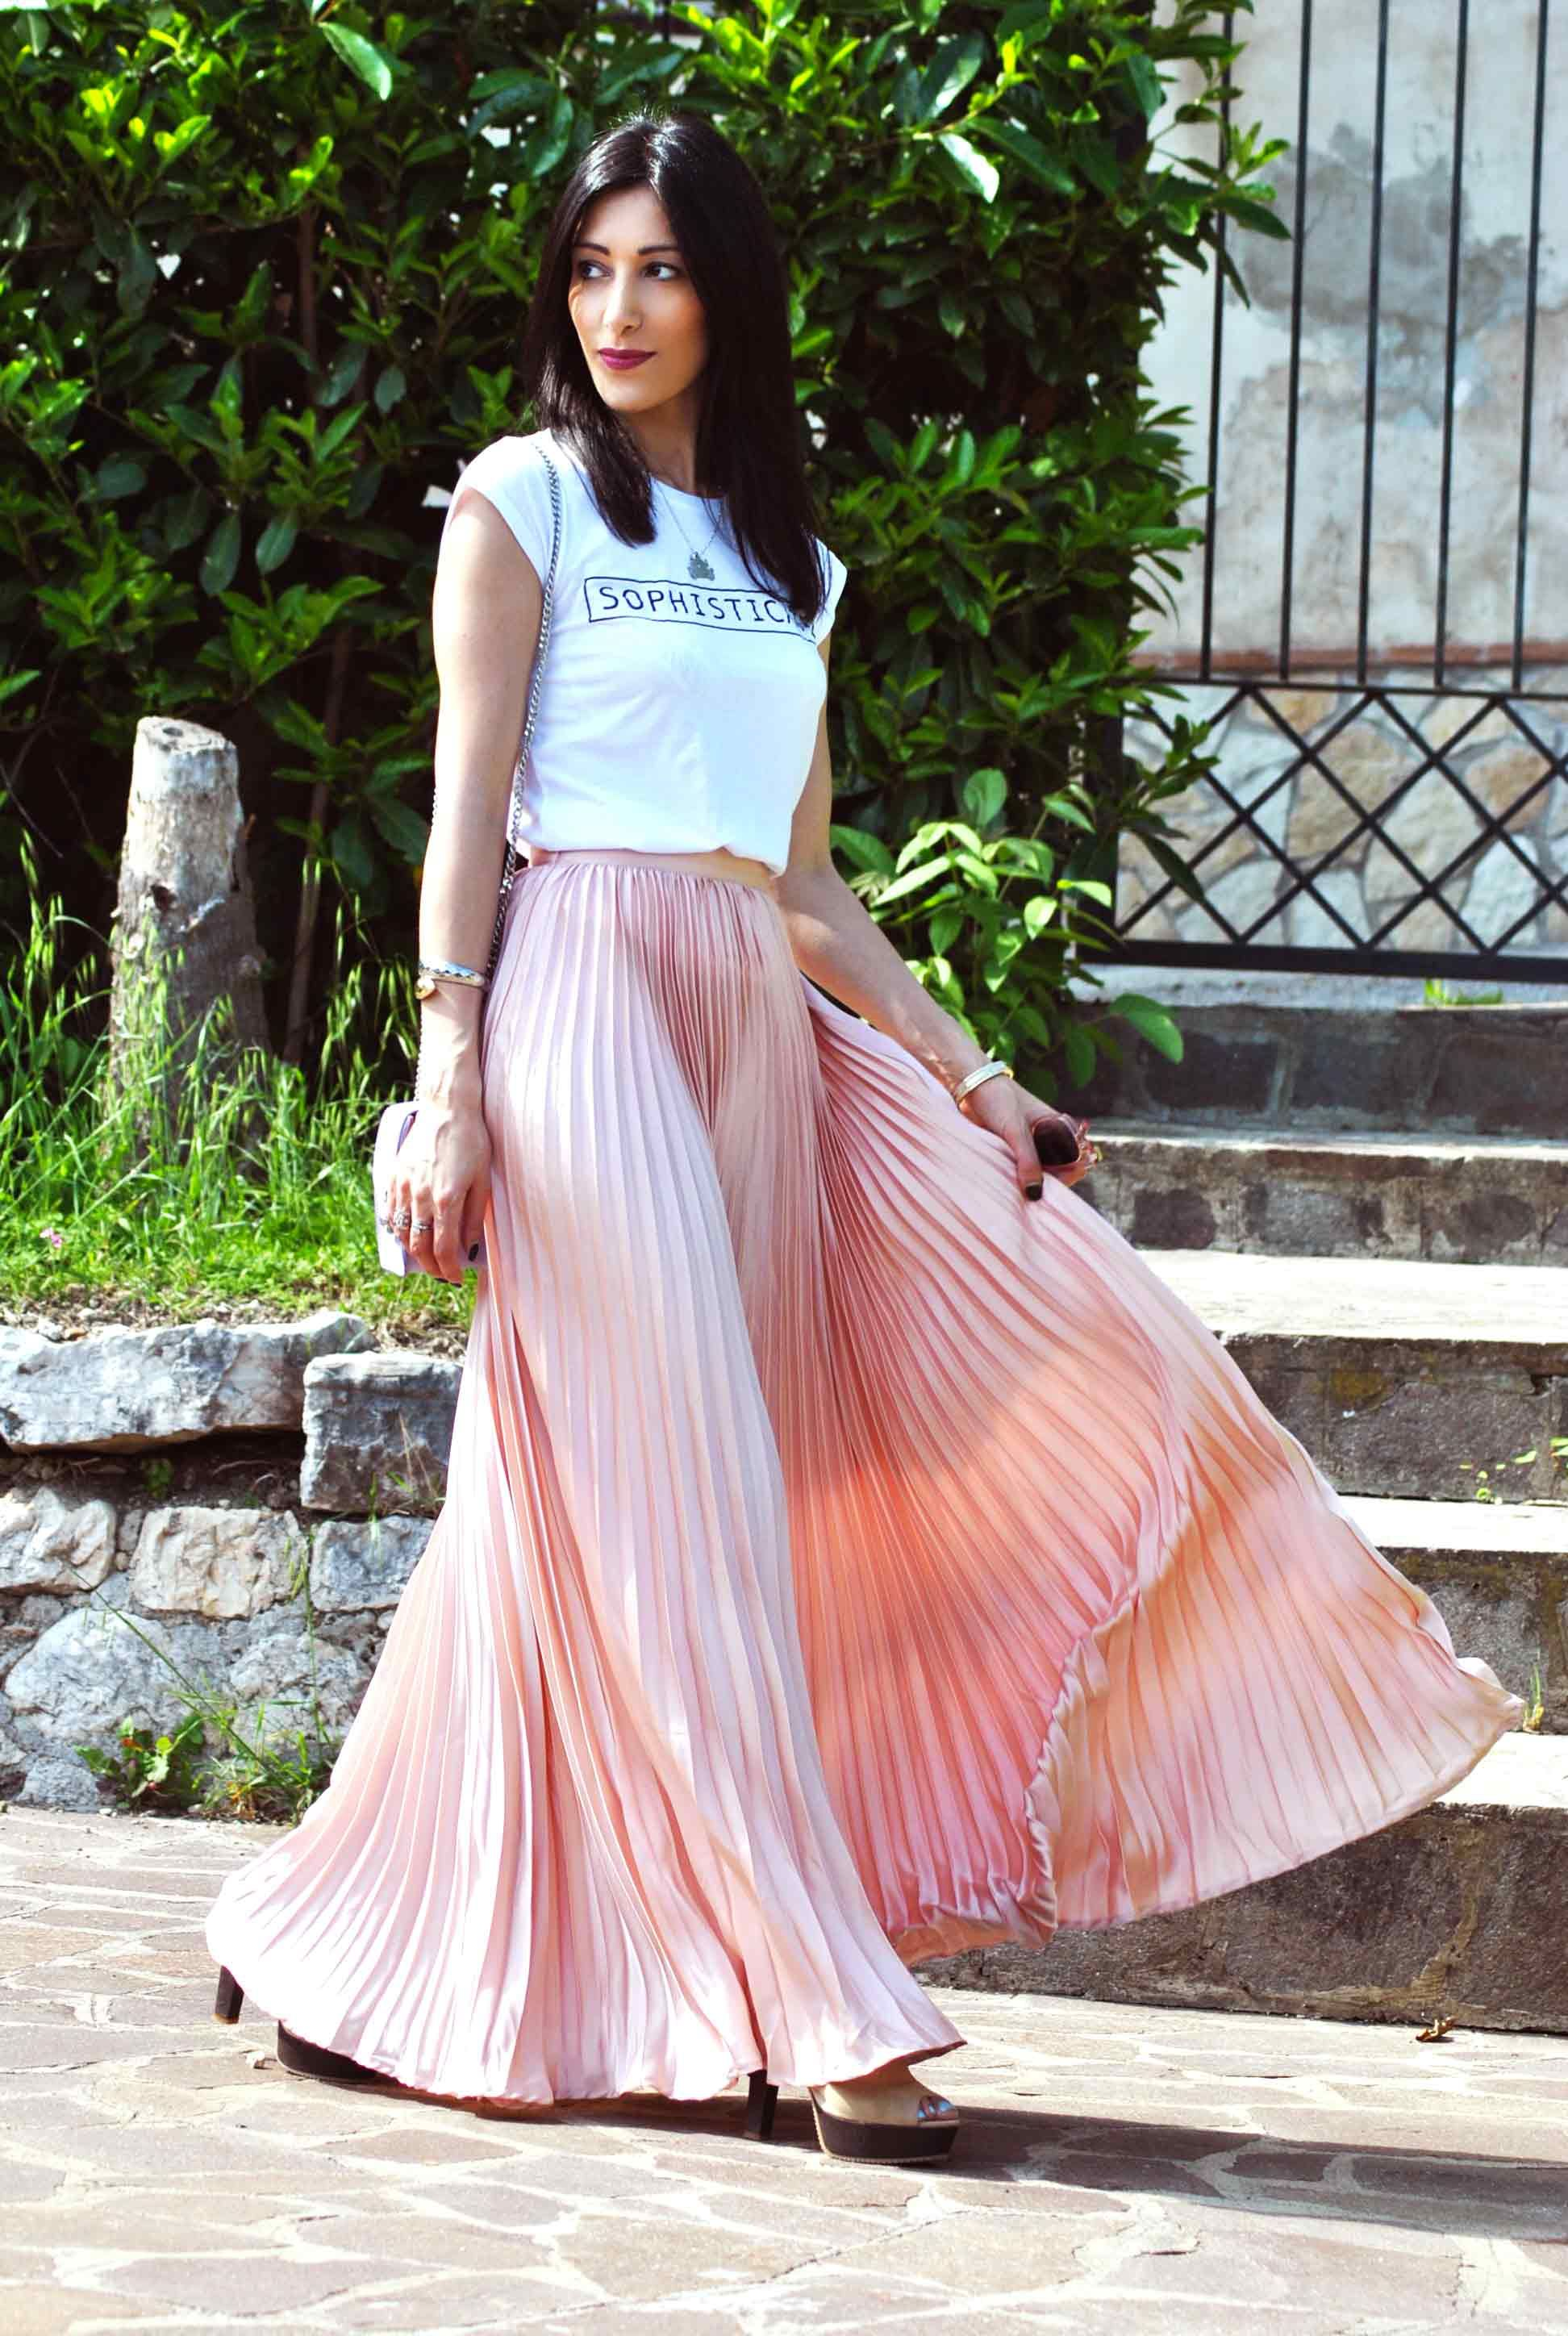 new product c05ba d7183 Gonna lunga plissettata, long pleated skirt, pink powder ...